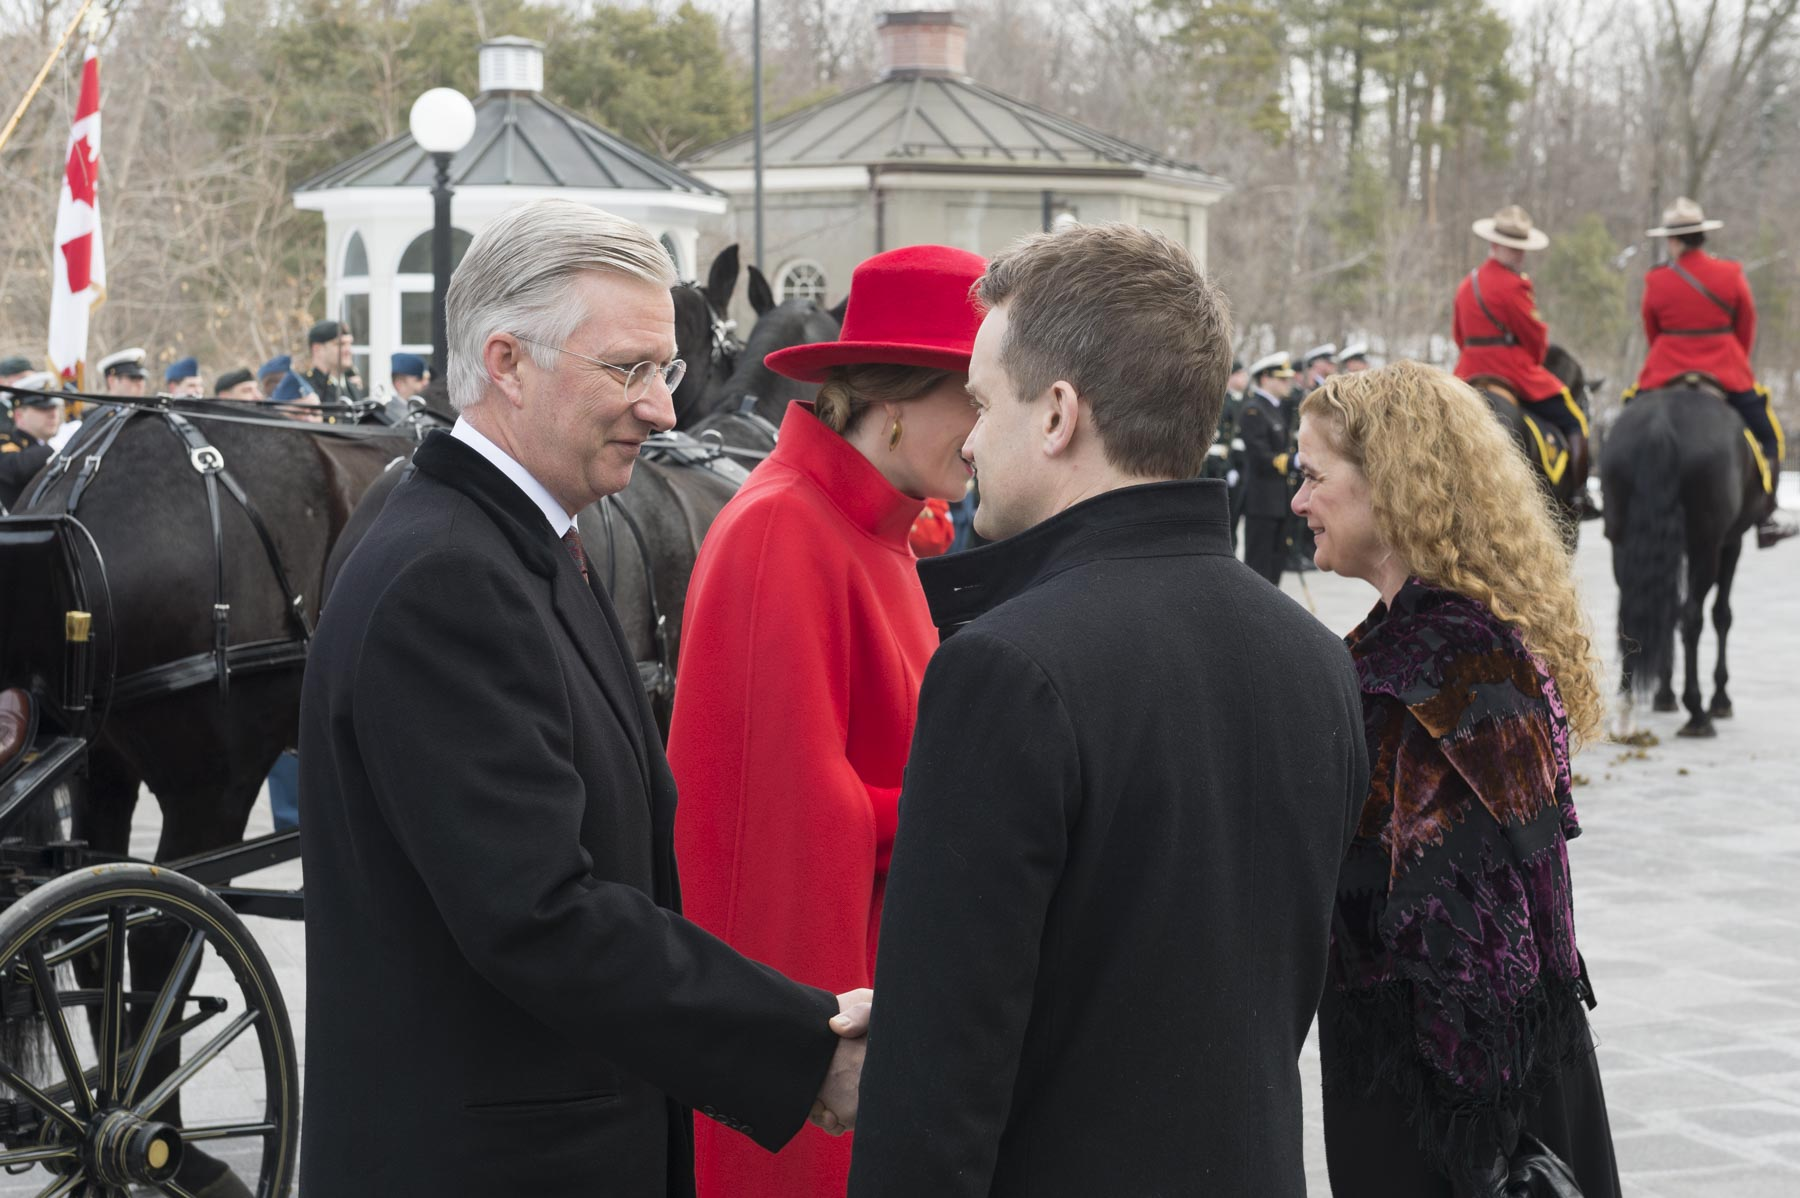 Their Majesties were welcomed by the Honourable Seamus O'Regan, Minister of Veterans Affairs and Associate Minister of National Defence, and the Governor General.